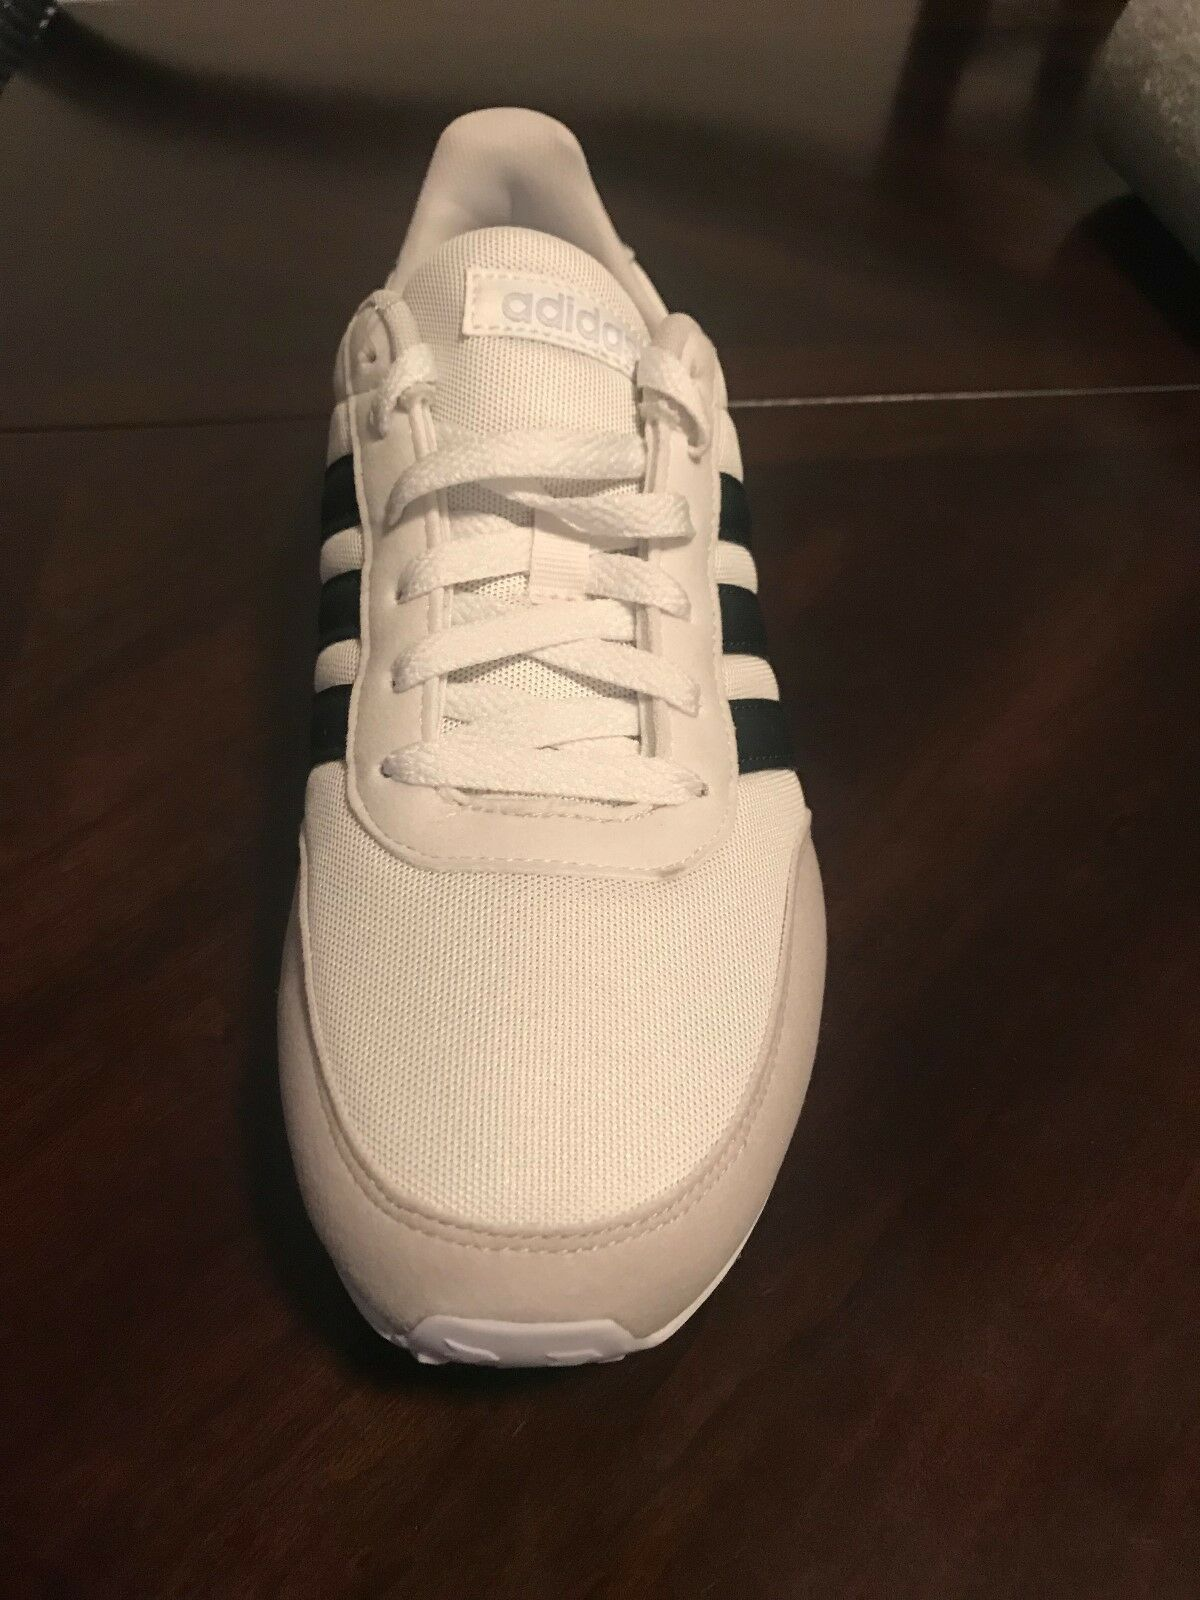 Women's Adidas Adidas Adidas V Racer 2.0 W White Beige Black Running shoes Size 10 NEW DB0424 b381a4